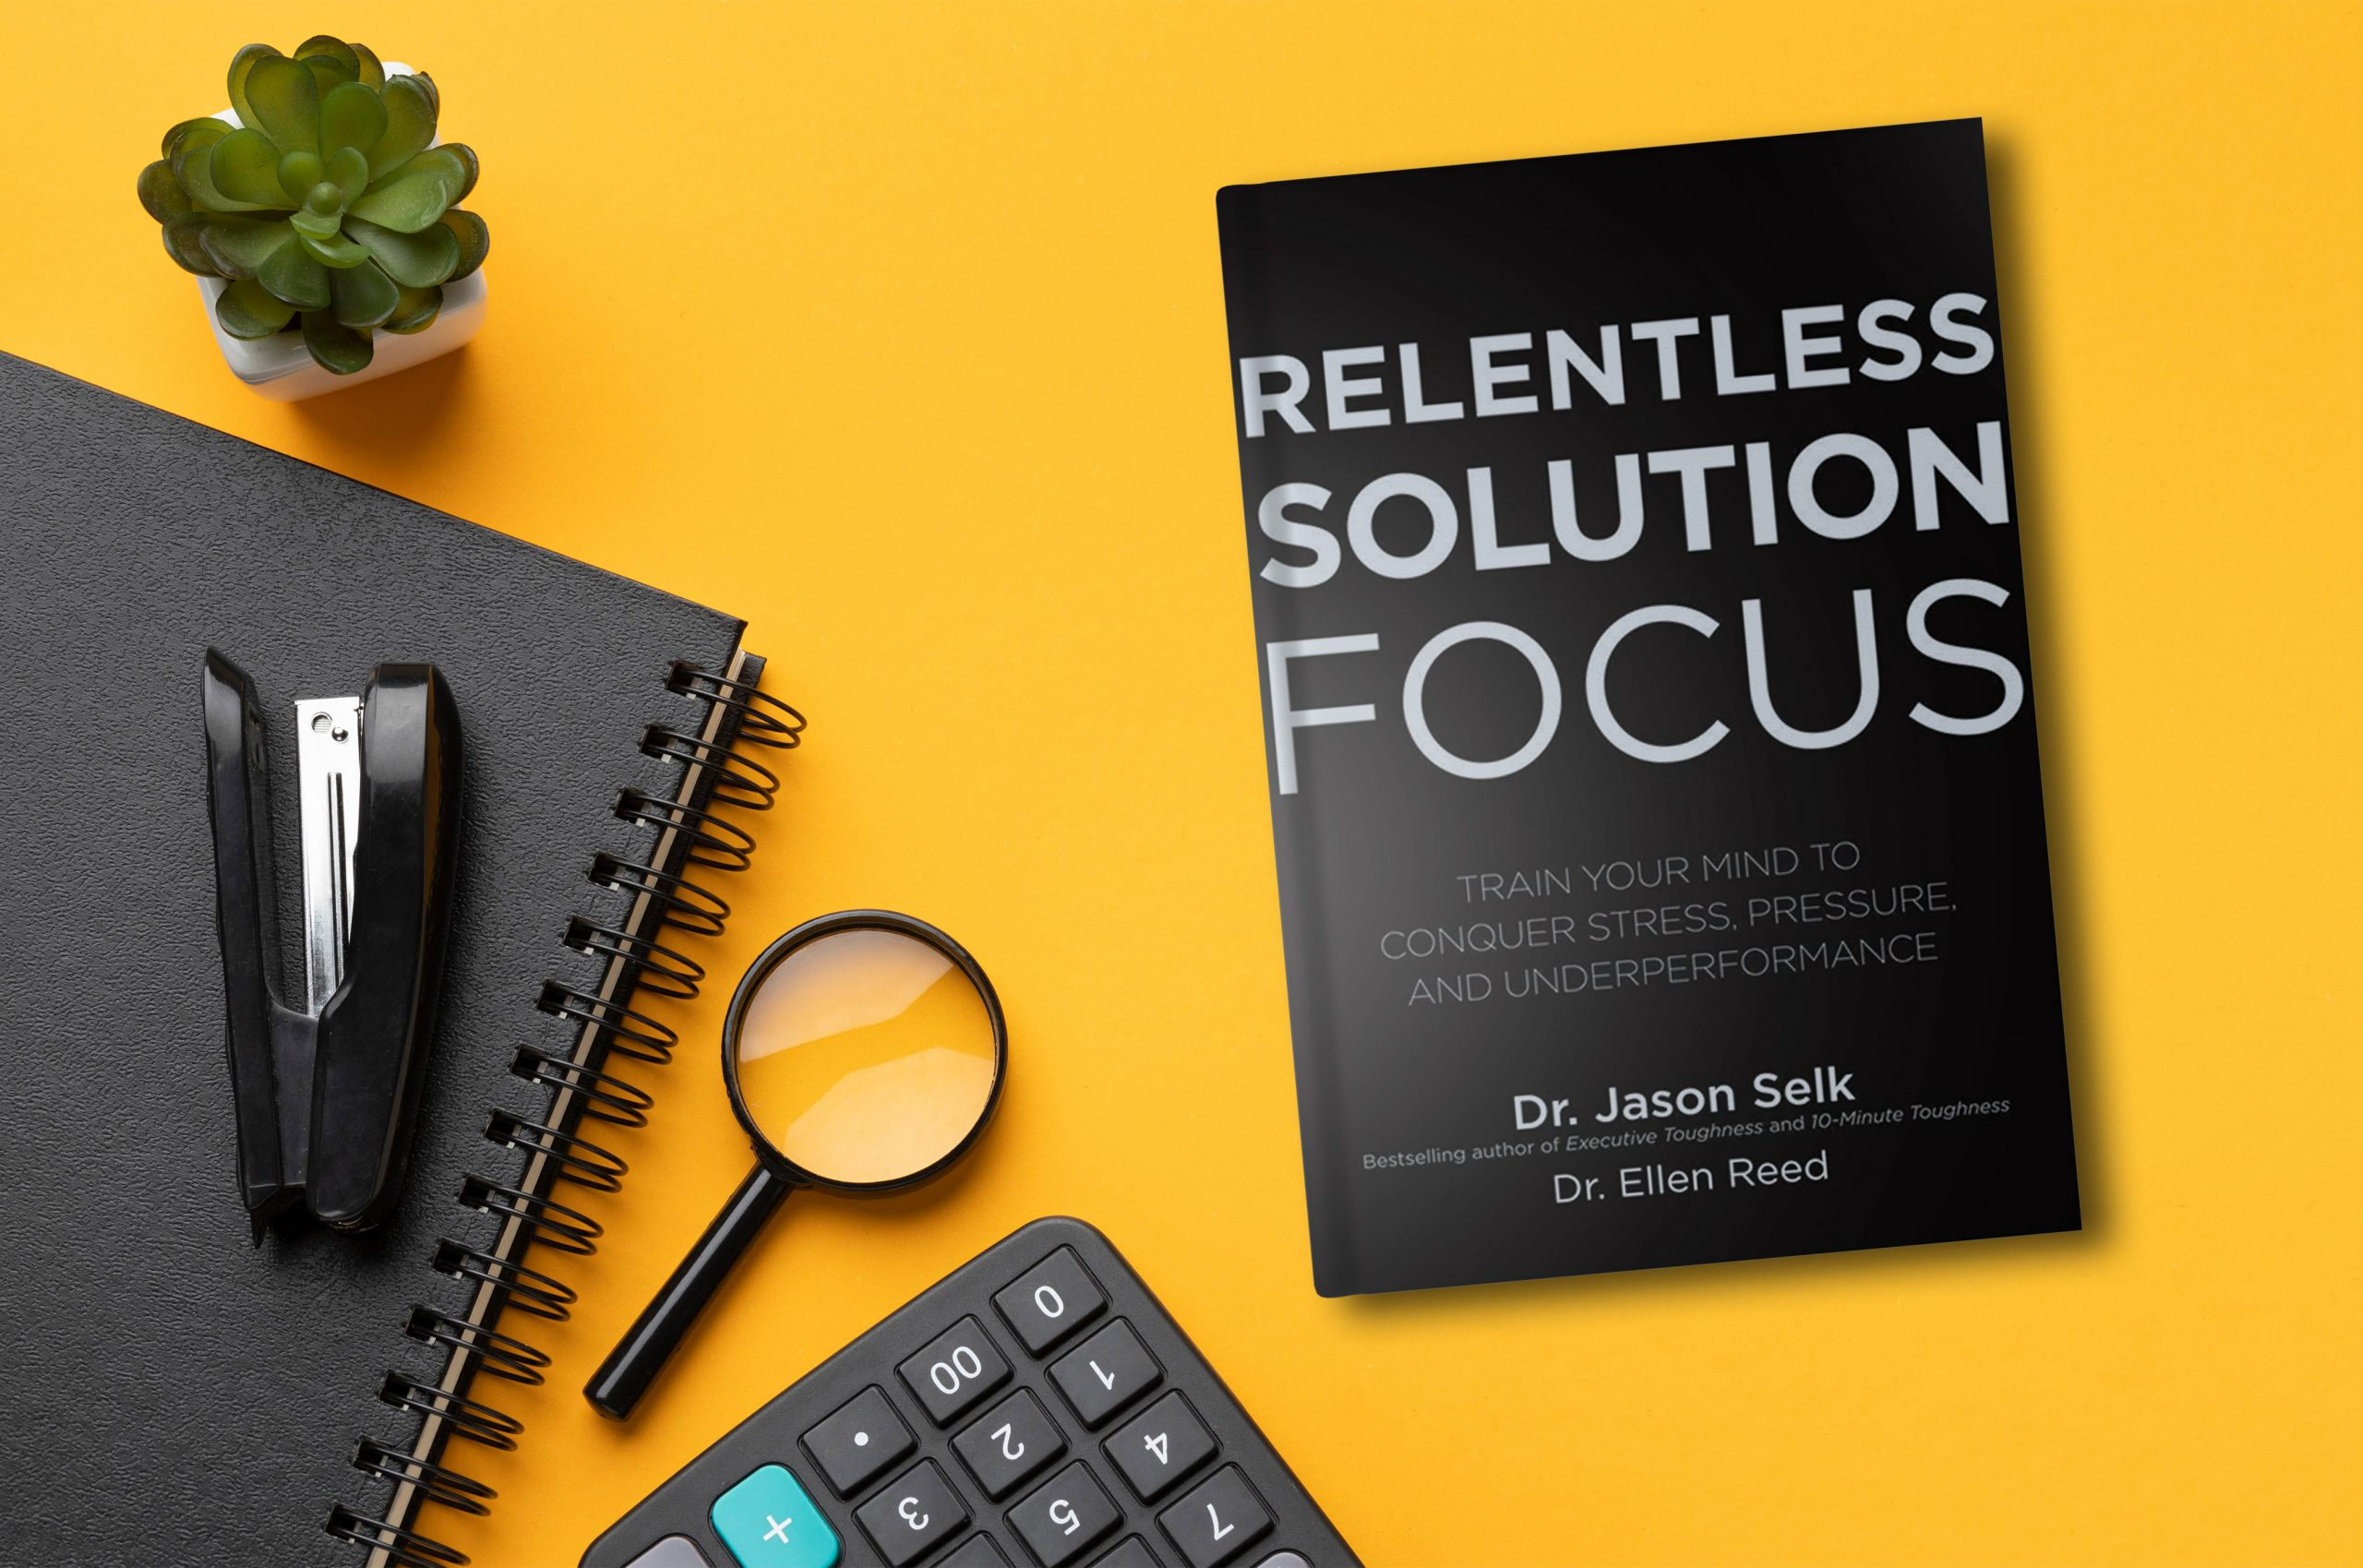 Book Review: Relentless Solution Focus by Dr. Jason Selk